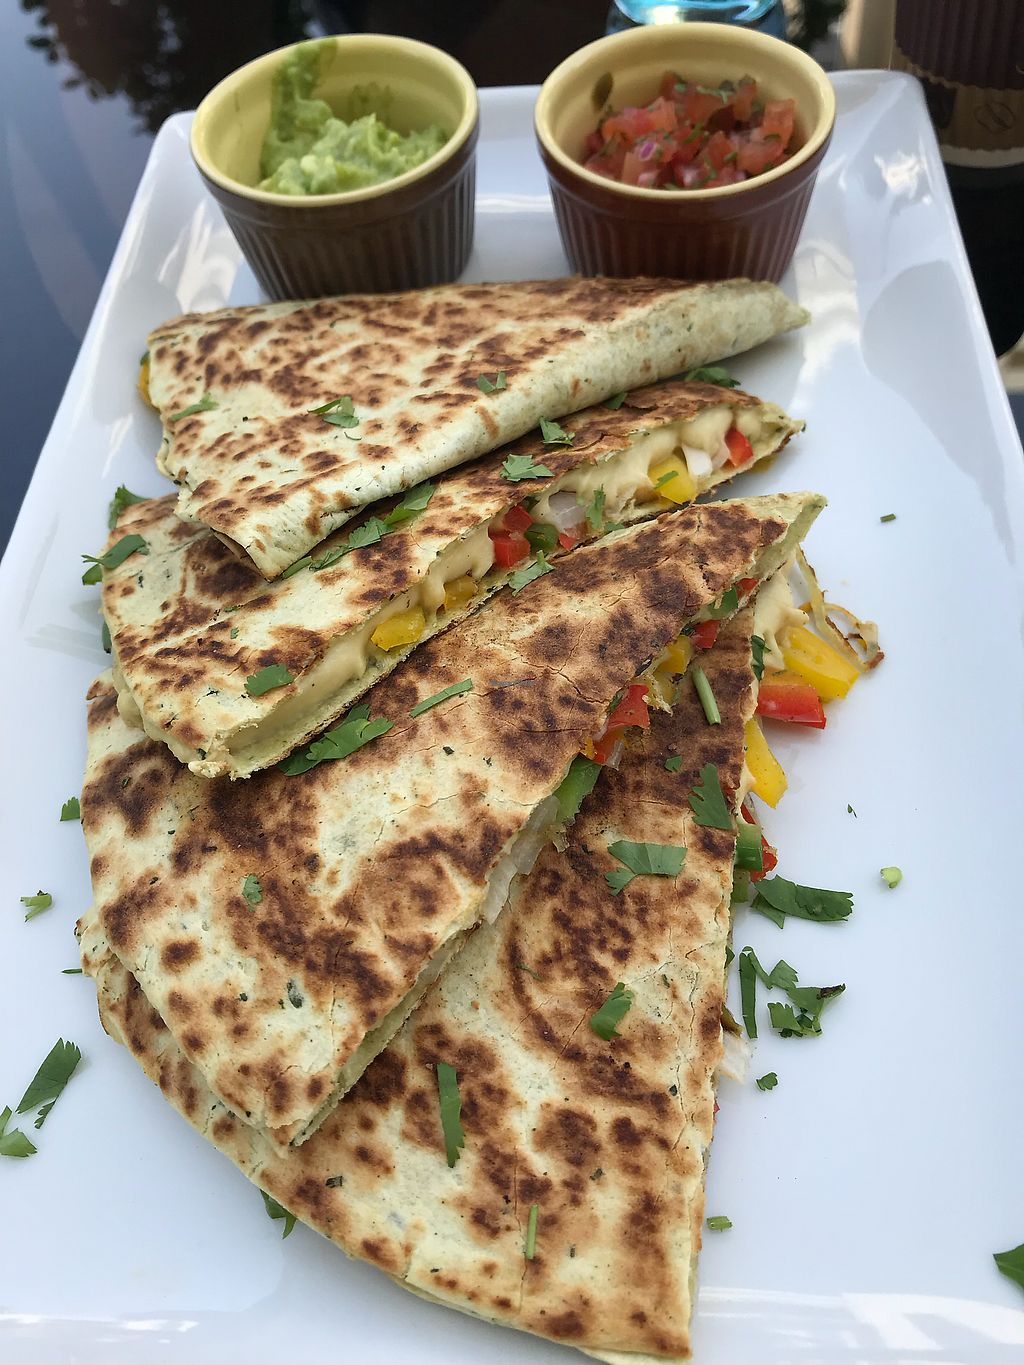 """Photo of Wheatfields  by <a href=""""/members/profile/Ezey11"""">Ezey11</a> <br/>Vegan quesadilla <br/> March 9, 2018  - <a href='/contact/abuse/image/113499/368380'>Report</a>"""